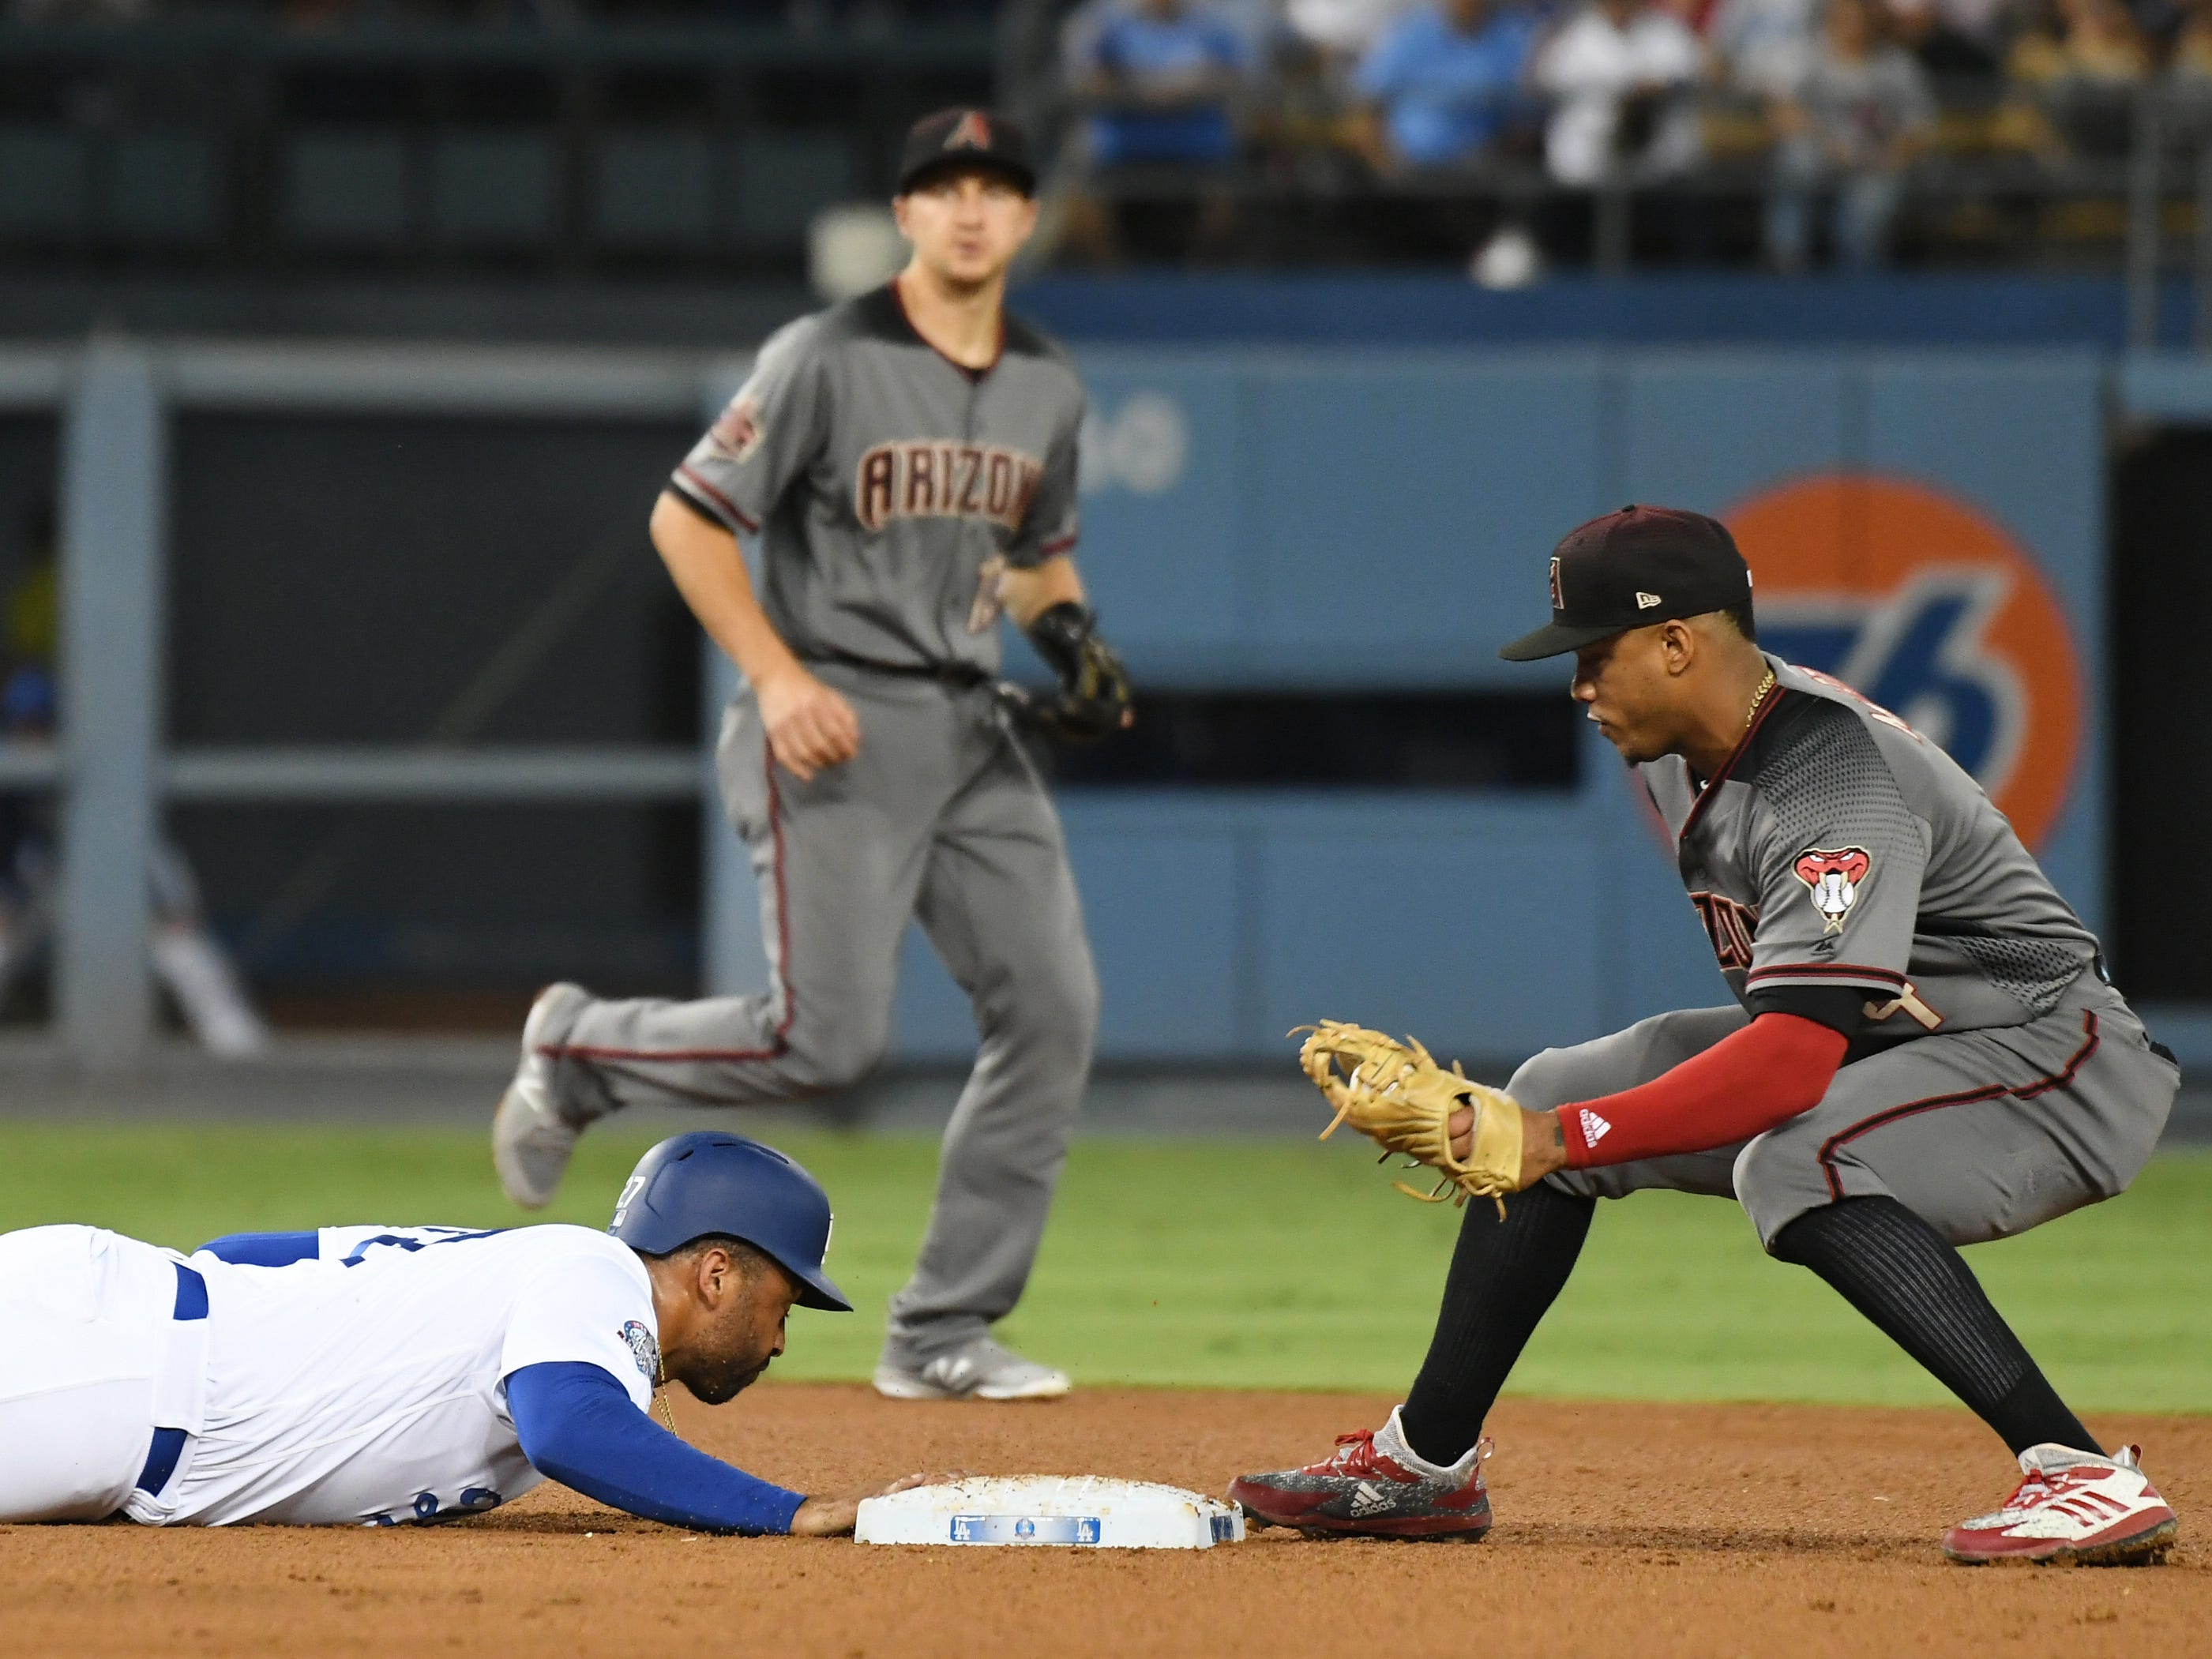 Aug 30, 2018; Los Angeles, CA, USA; Los Angeles Dodgers left fielder Matt Kemp (27) dives back to second against Arizona Diamondbacks shortstop Ketel Marte (4) in the fourth inning at Dodger Stadium. Mandatory Credit: Richard Mackson-USA TODAY Sports